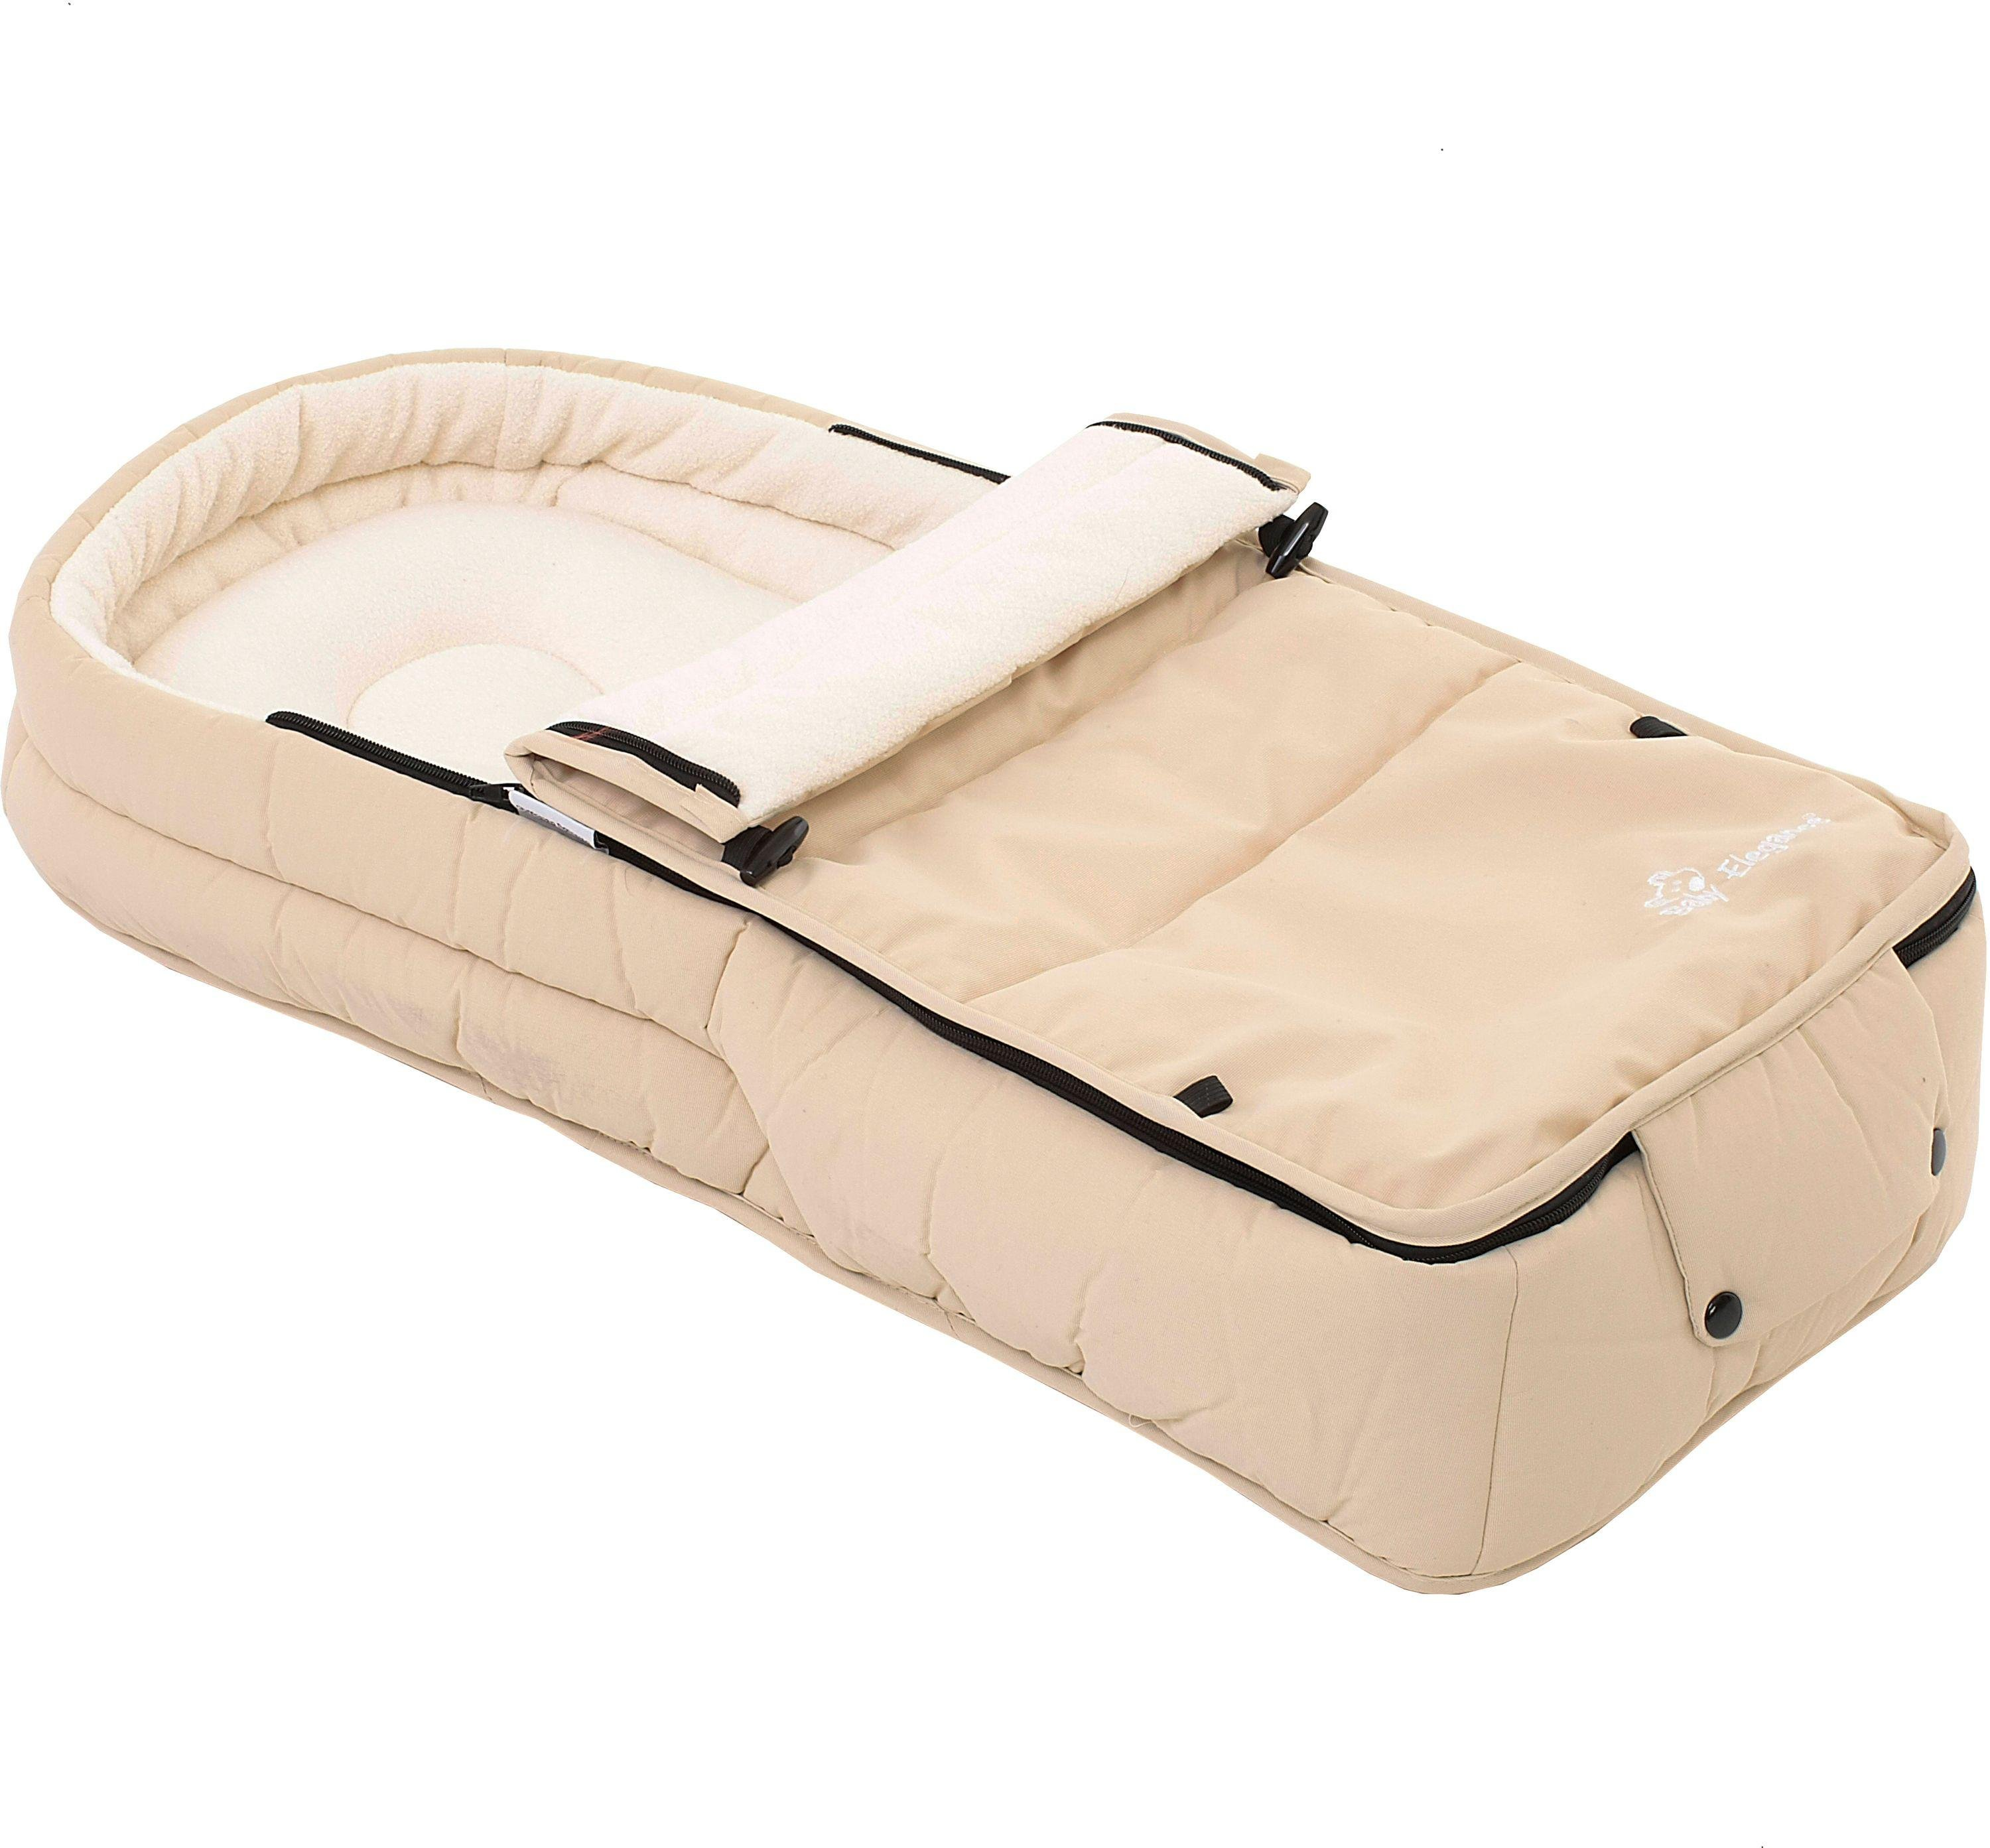 Image of Baby Elegance Snuggy Buggy - Cream.